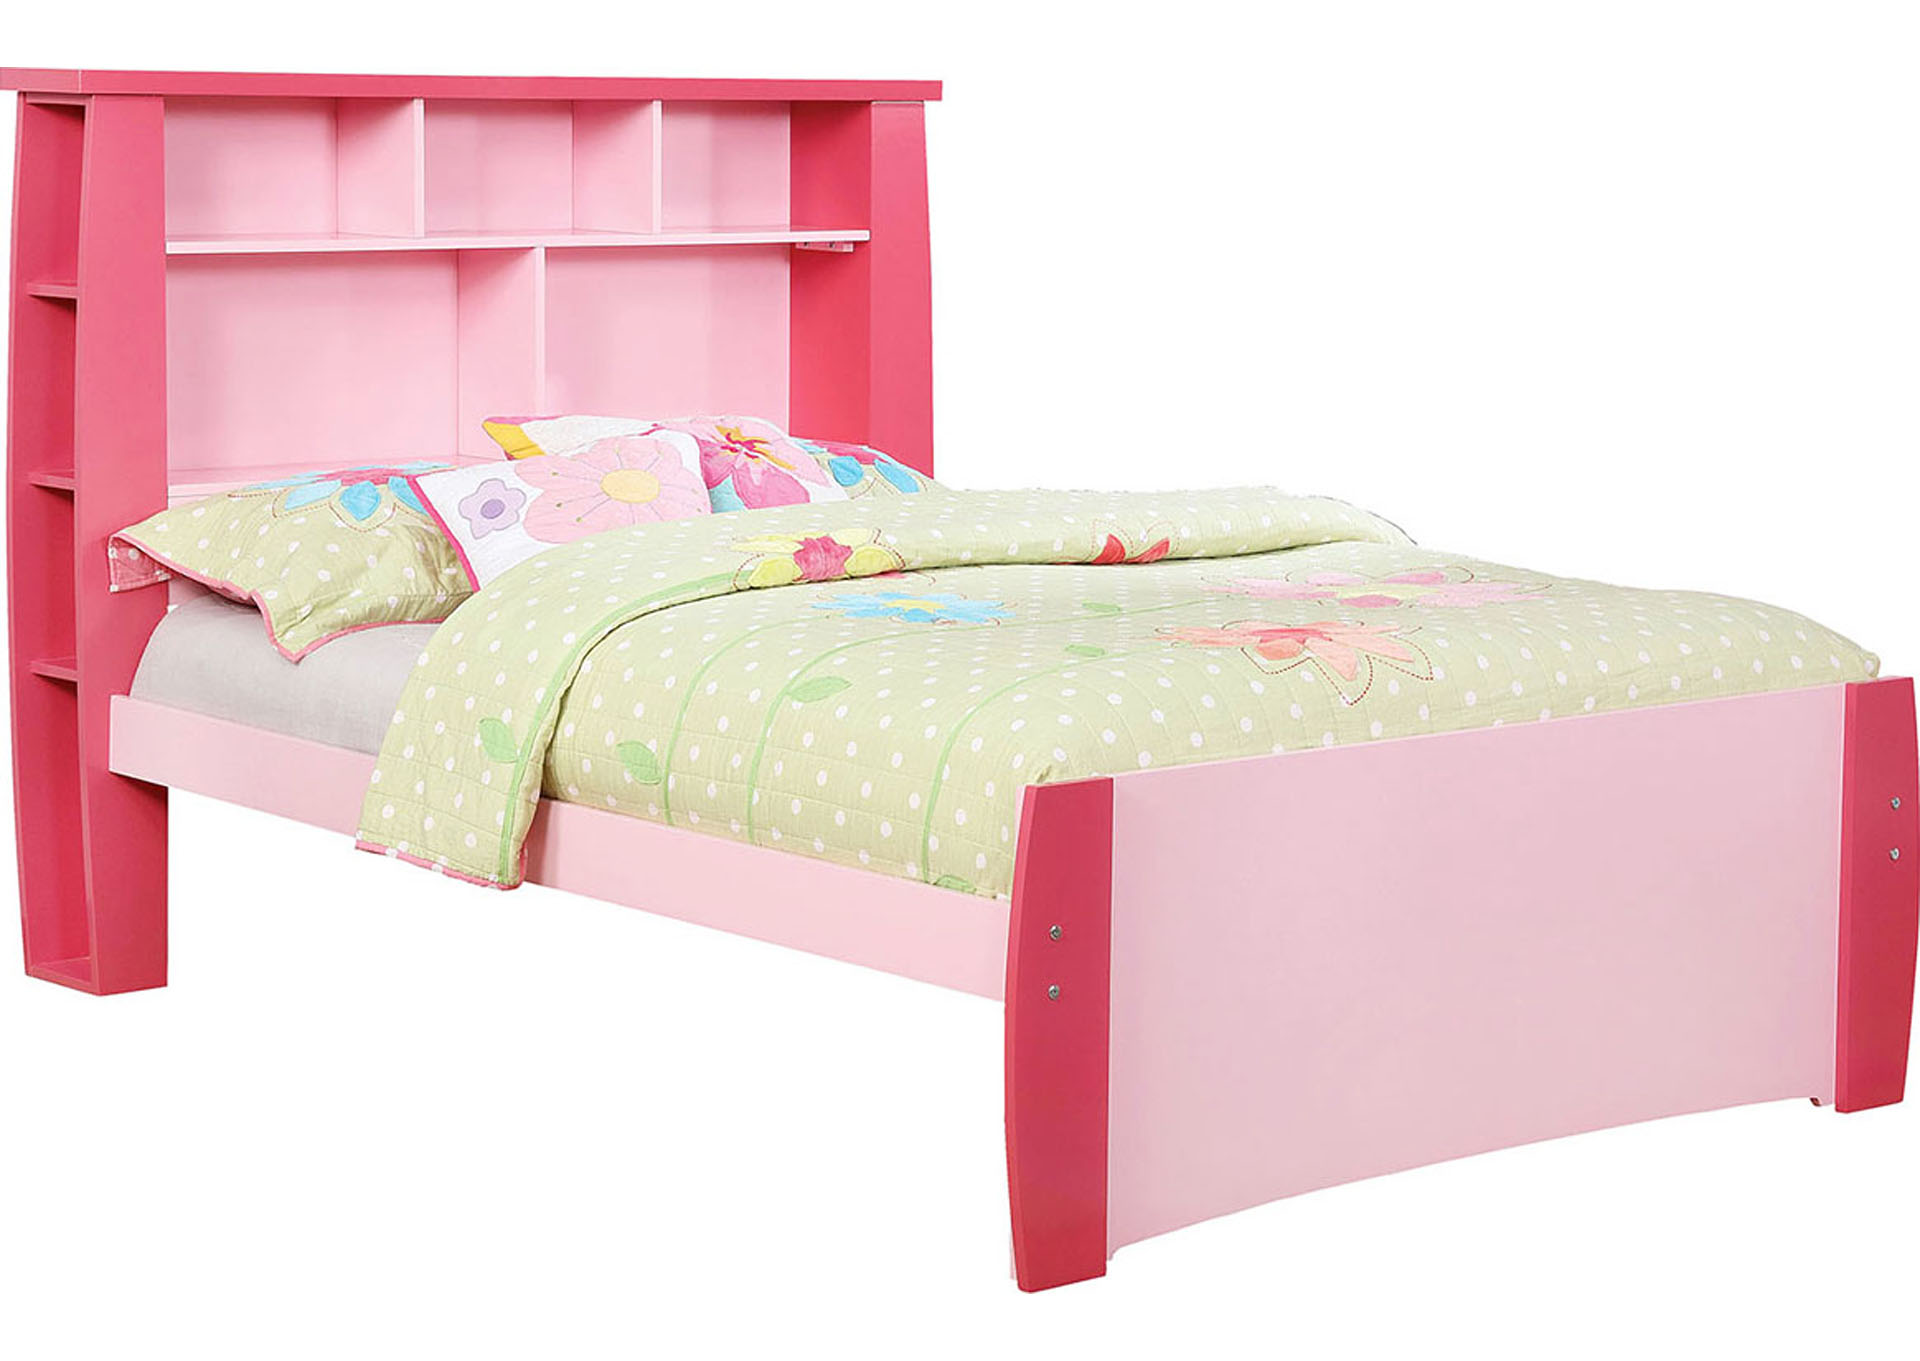 Marlee Pink Full Bed,Furniture of America